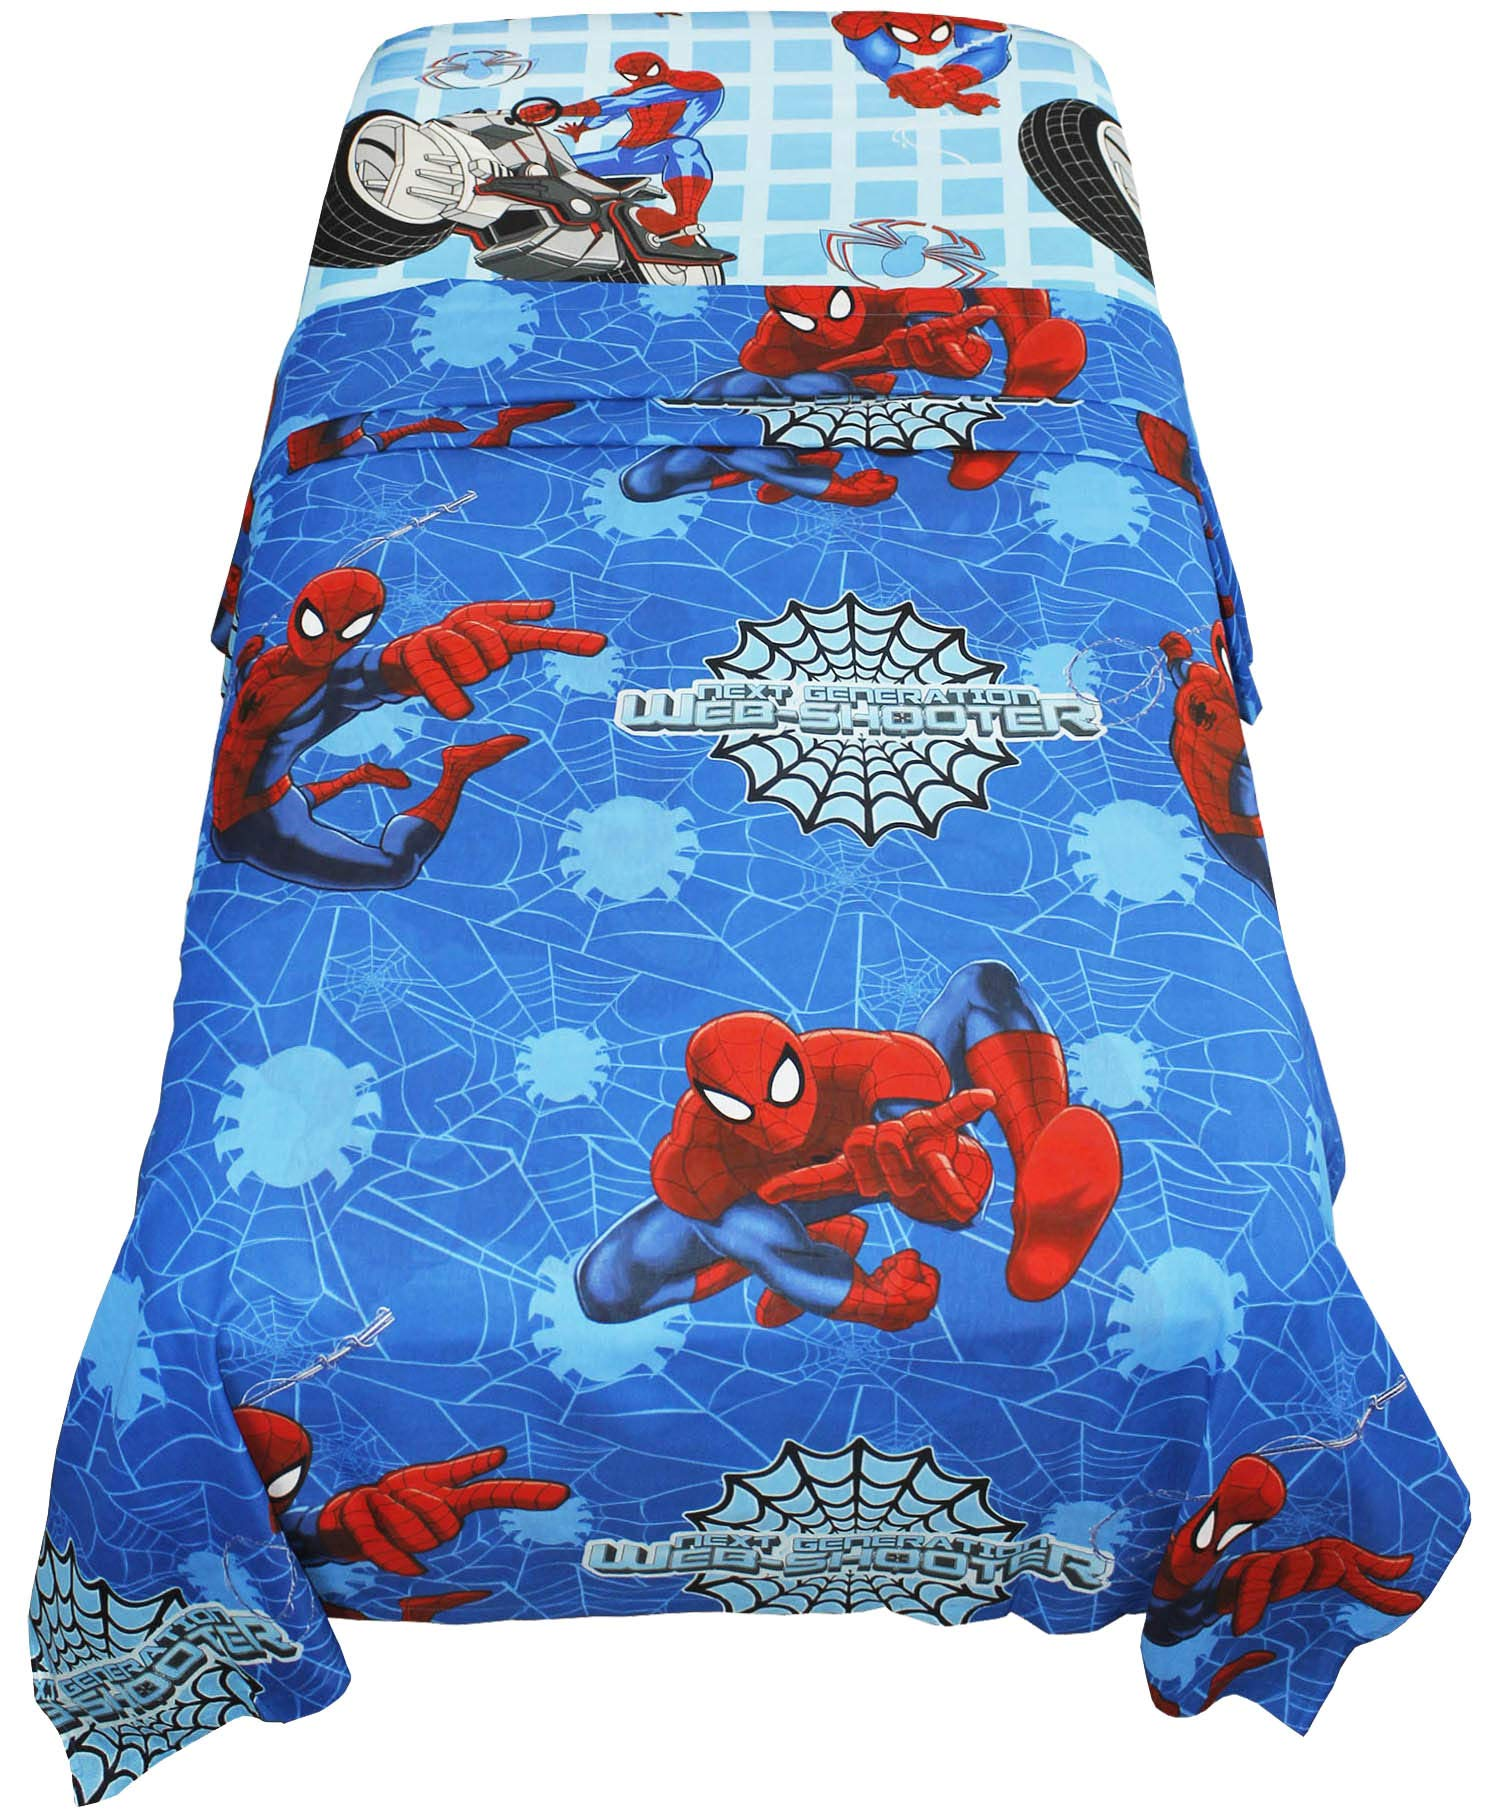 Marvel Spiderman ''I am the Ultimate'' 2-pc. Twin Size Sheet Set